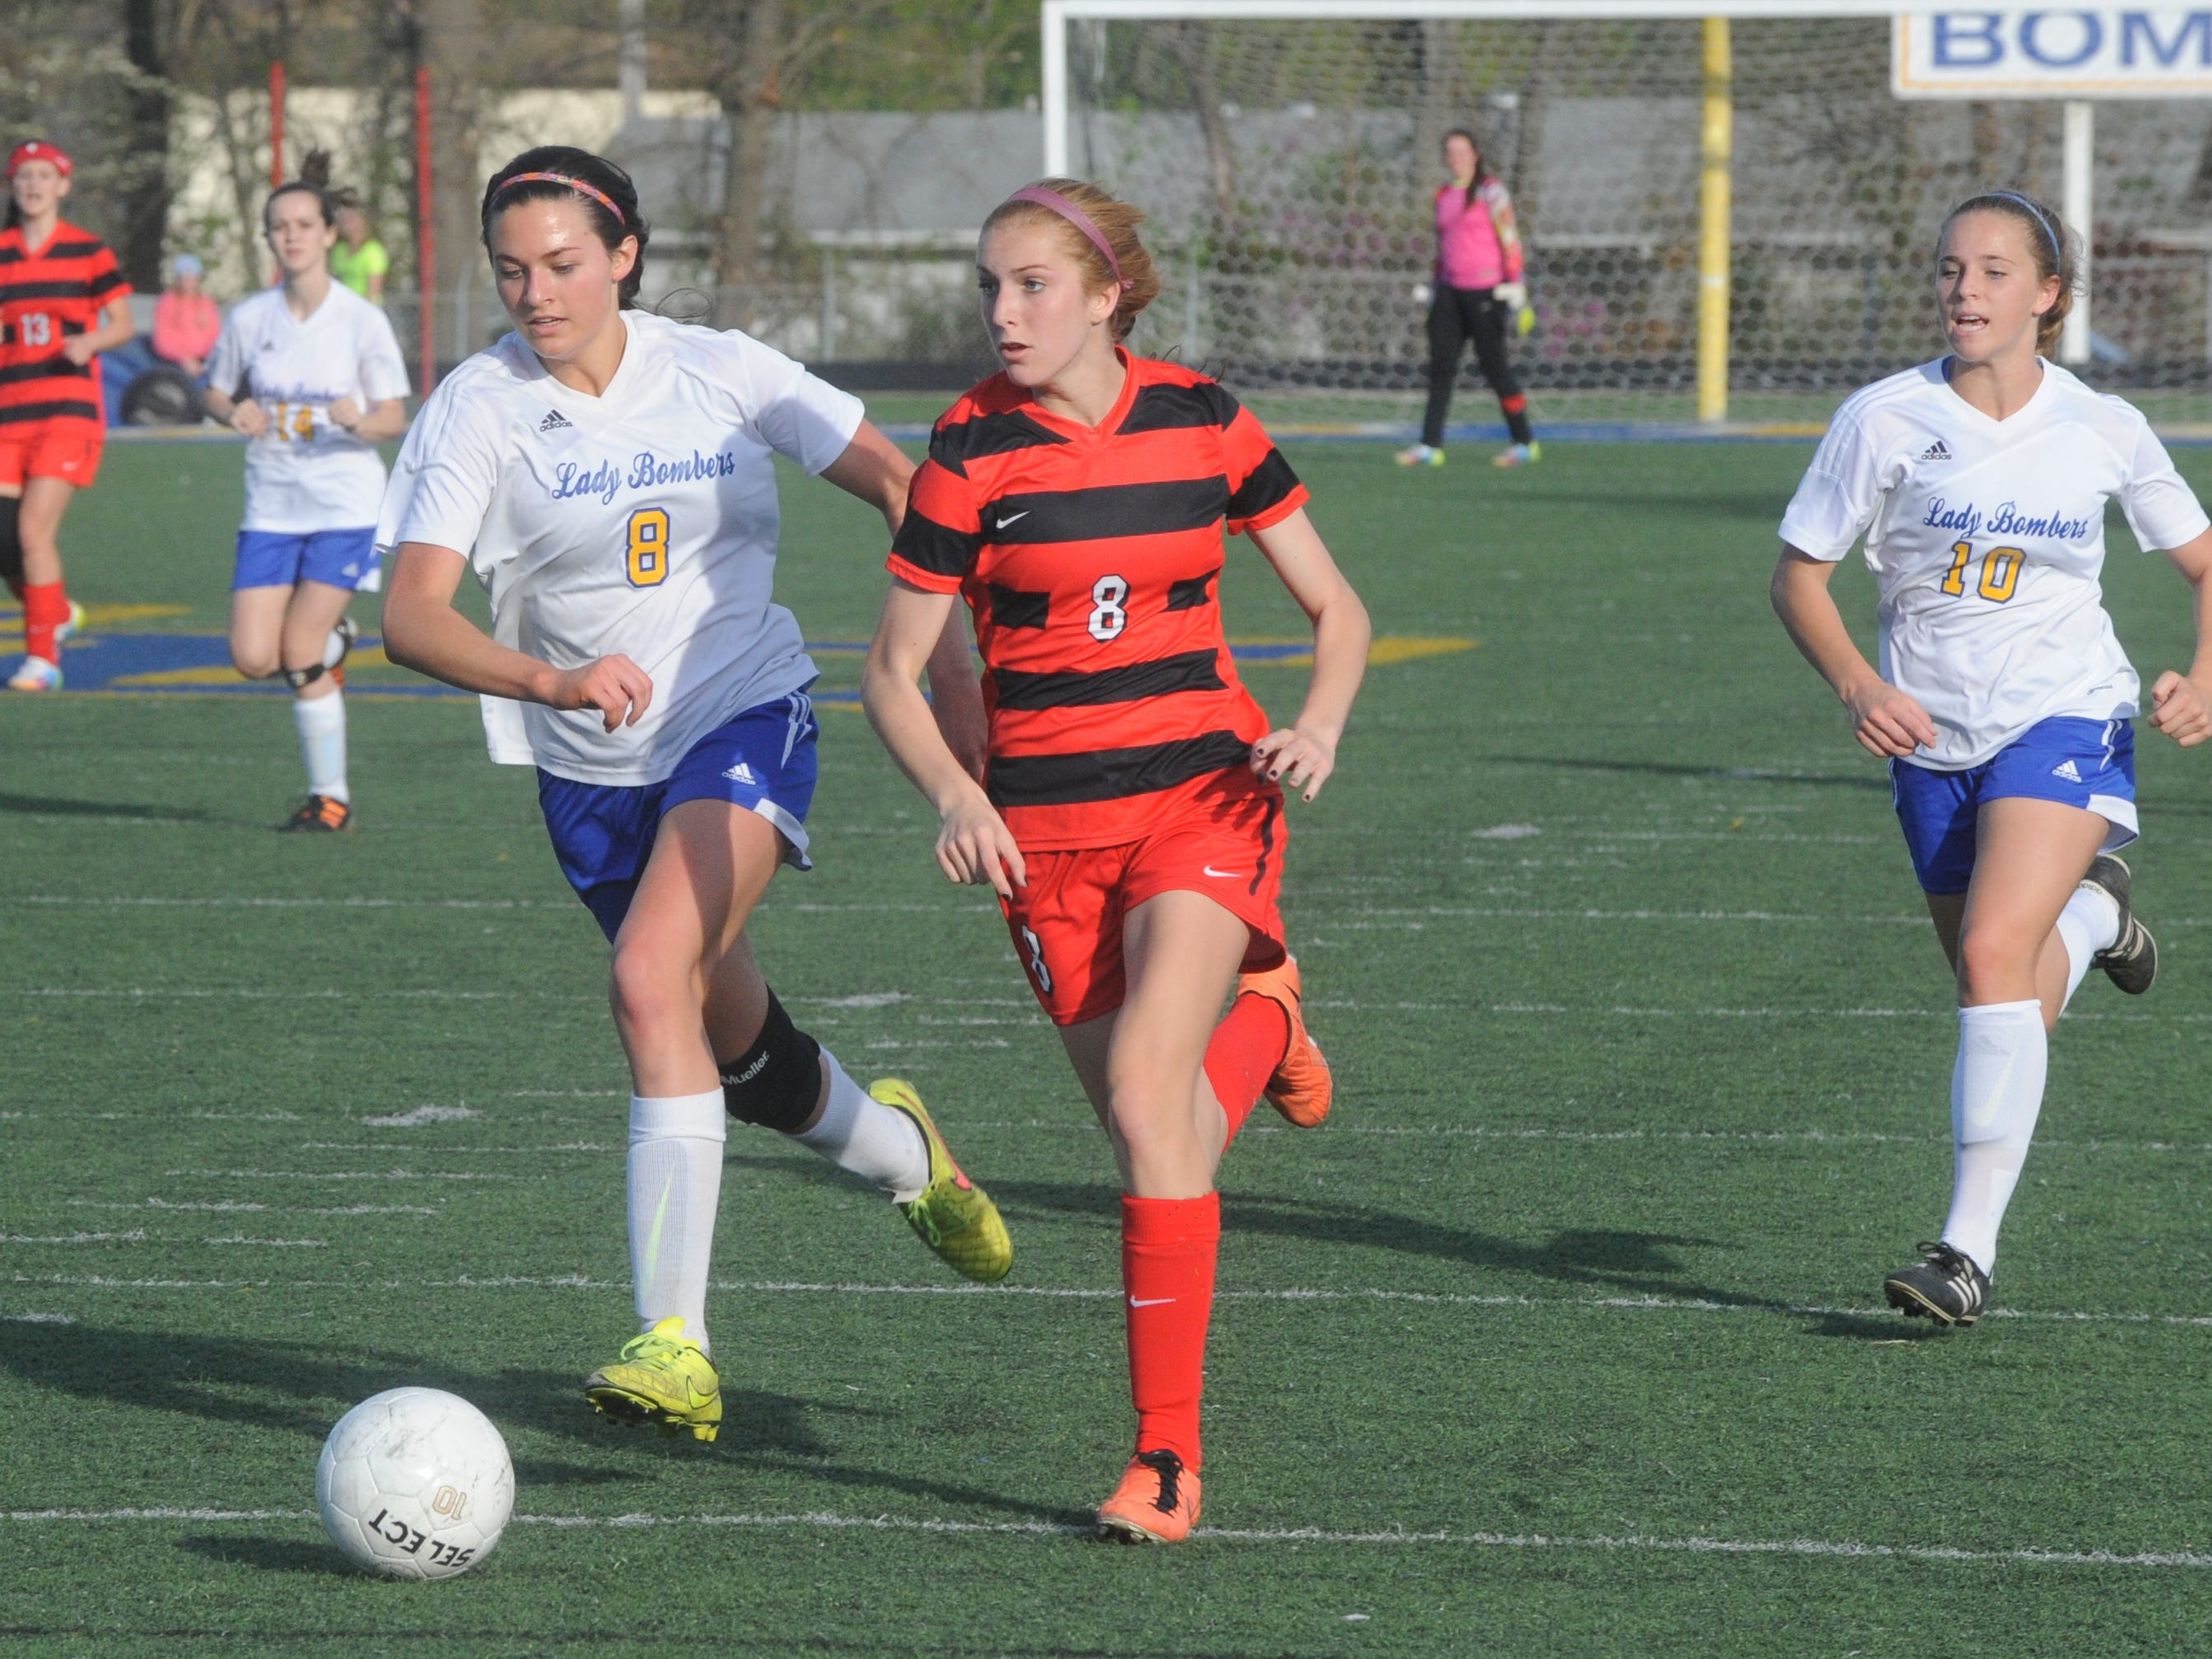 Mountain Home's Jessica Swonger, left, races Cabot's Tristyn Edgar to the ball during the Lady Bombers' 1-1 tie with the Lady Panthers on Friday at Bomber Stadium.